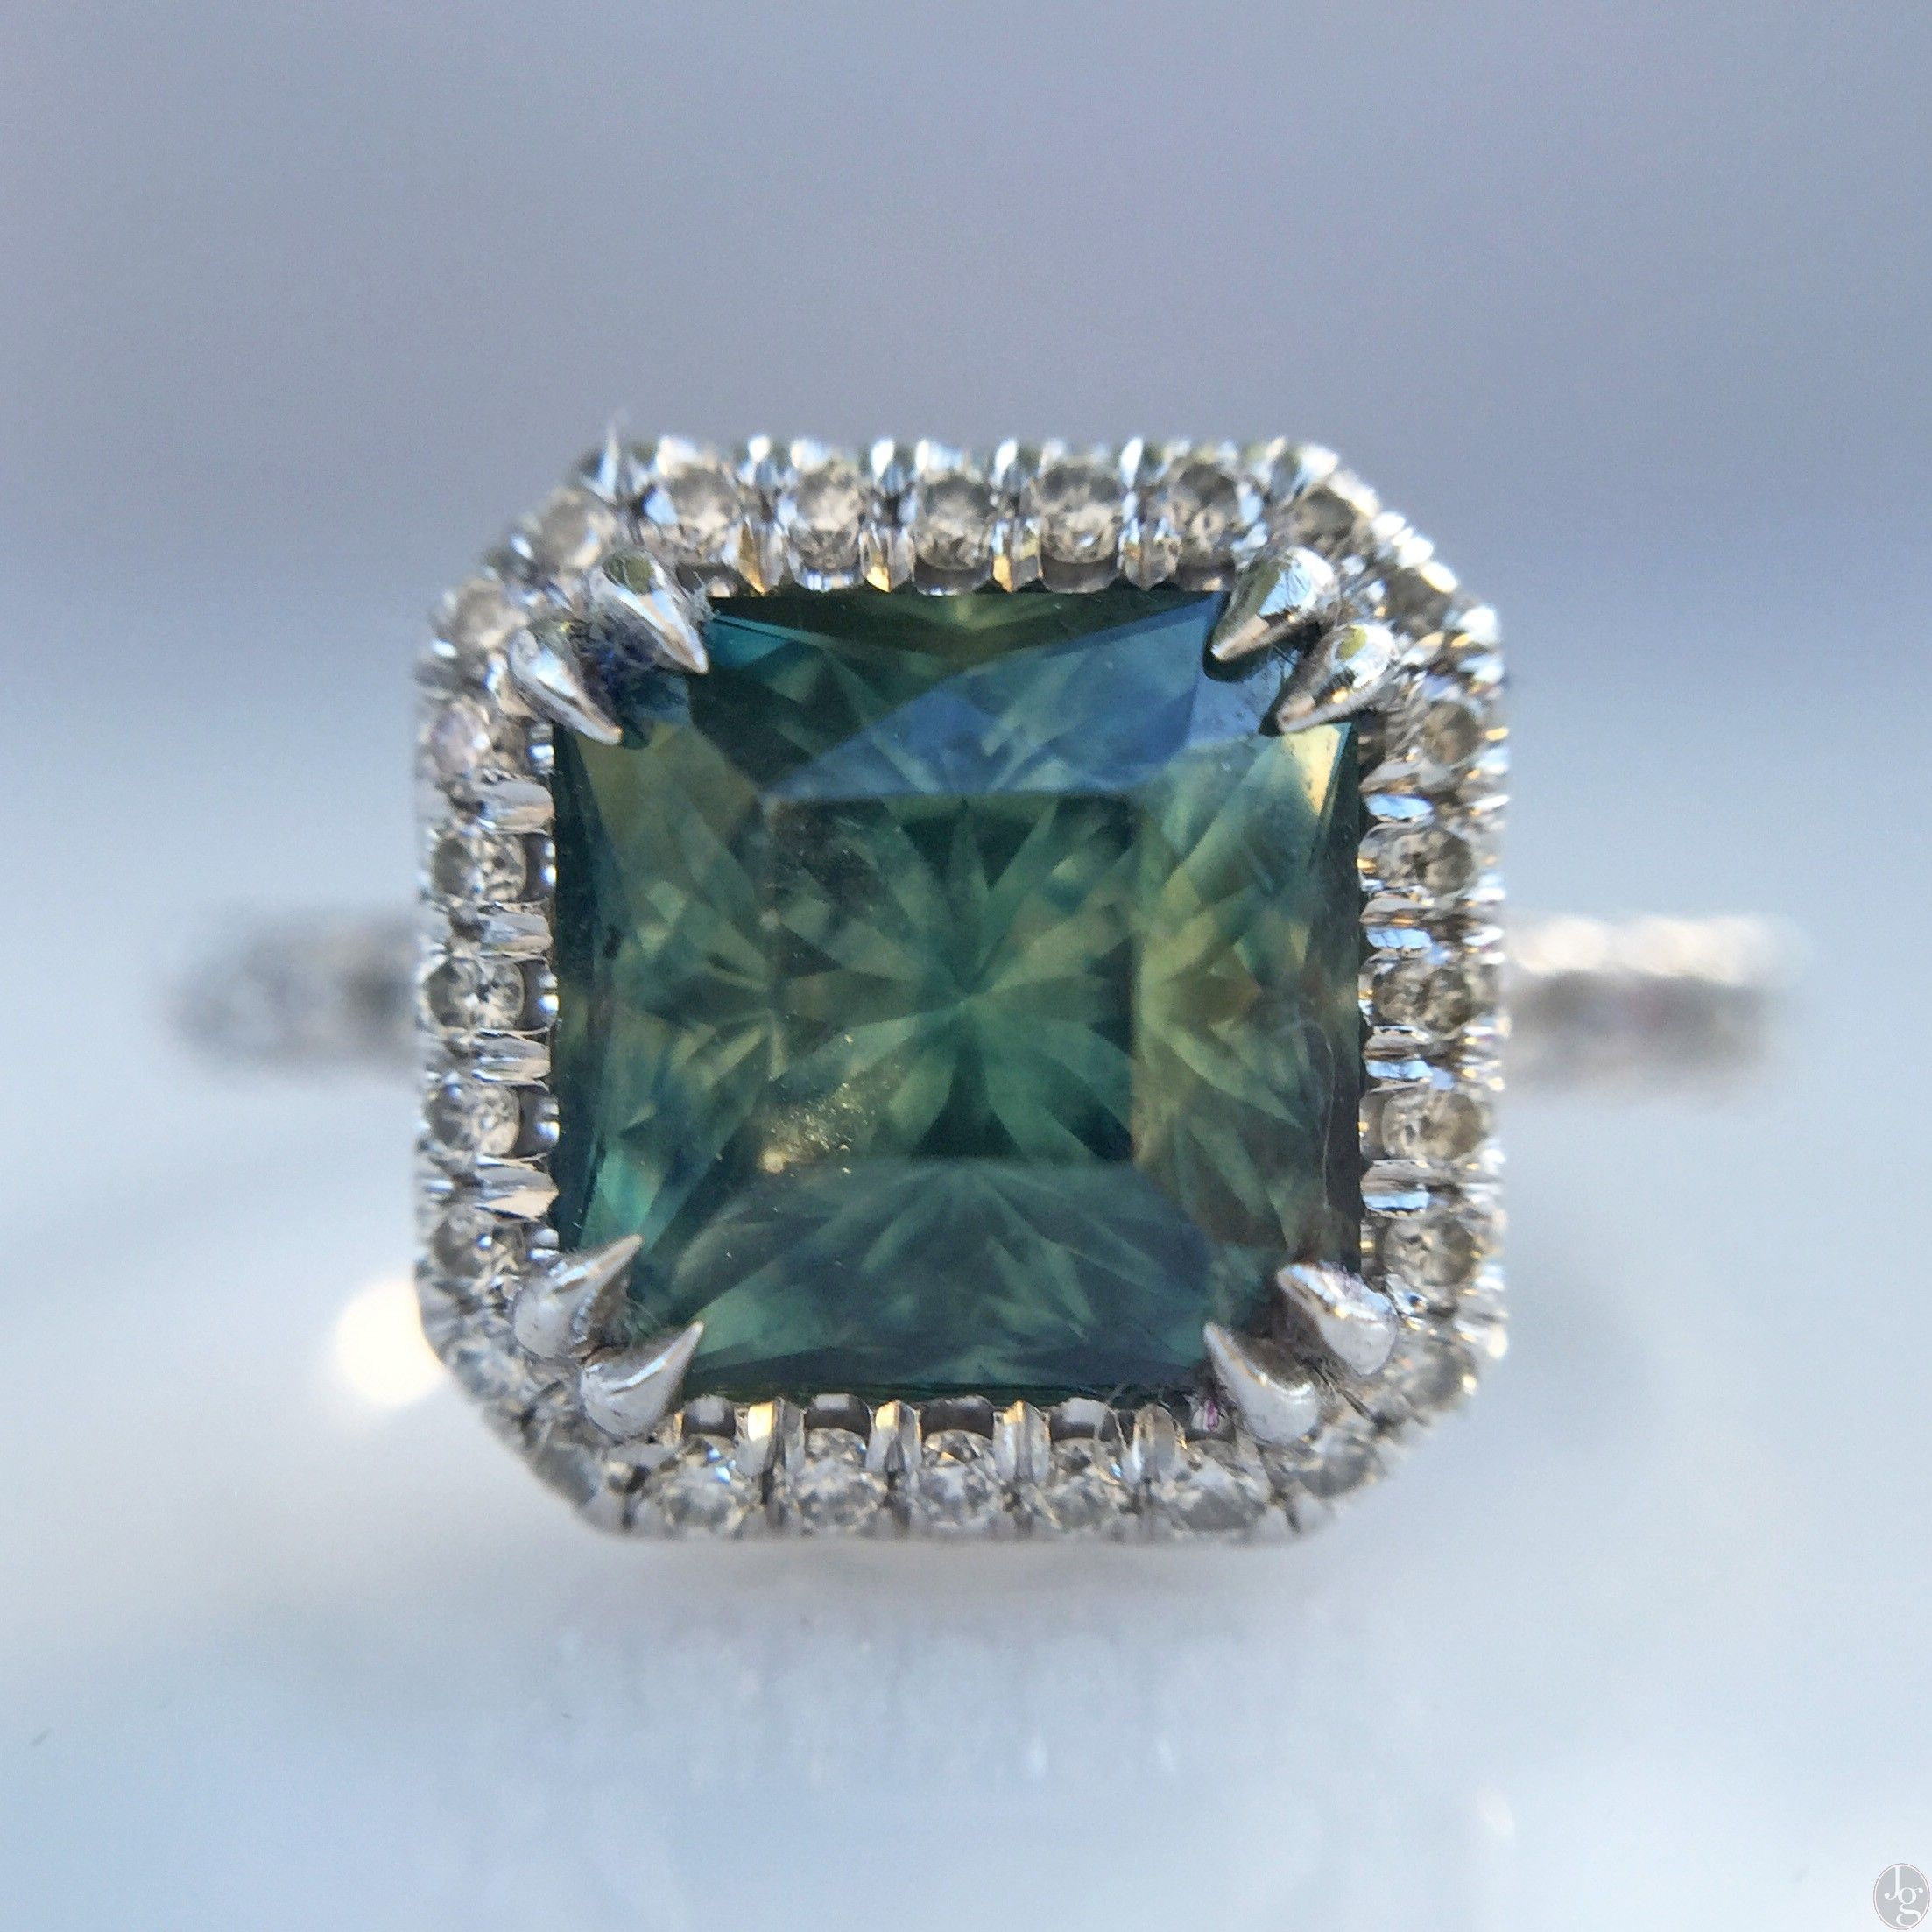 stone i background green gem loop gemstone video wedding turquoise sapphire spinning topaz videoblocks motion